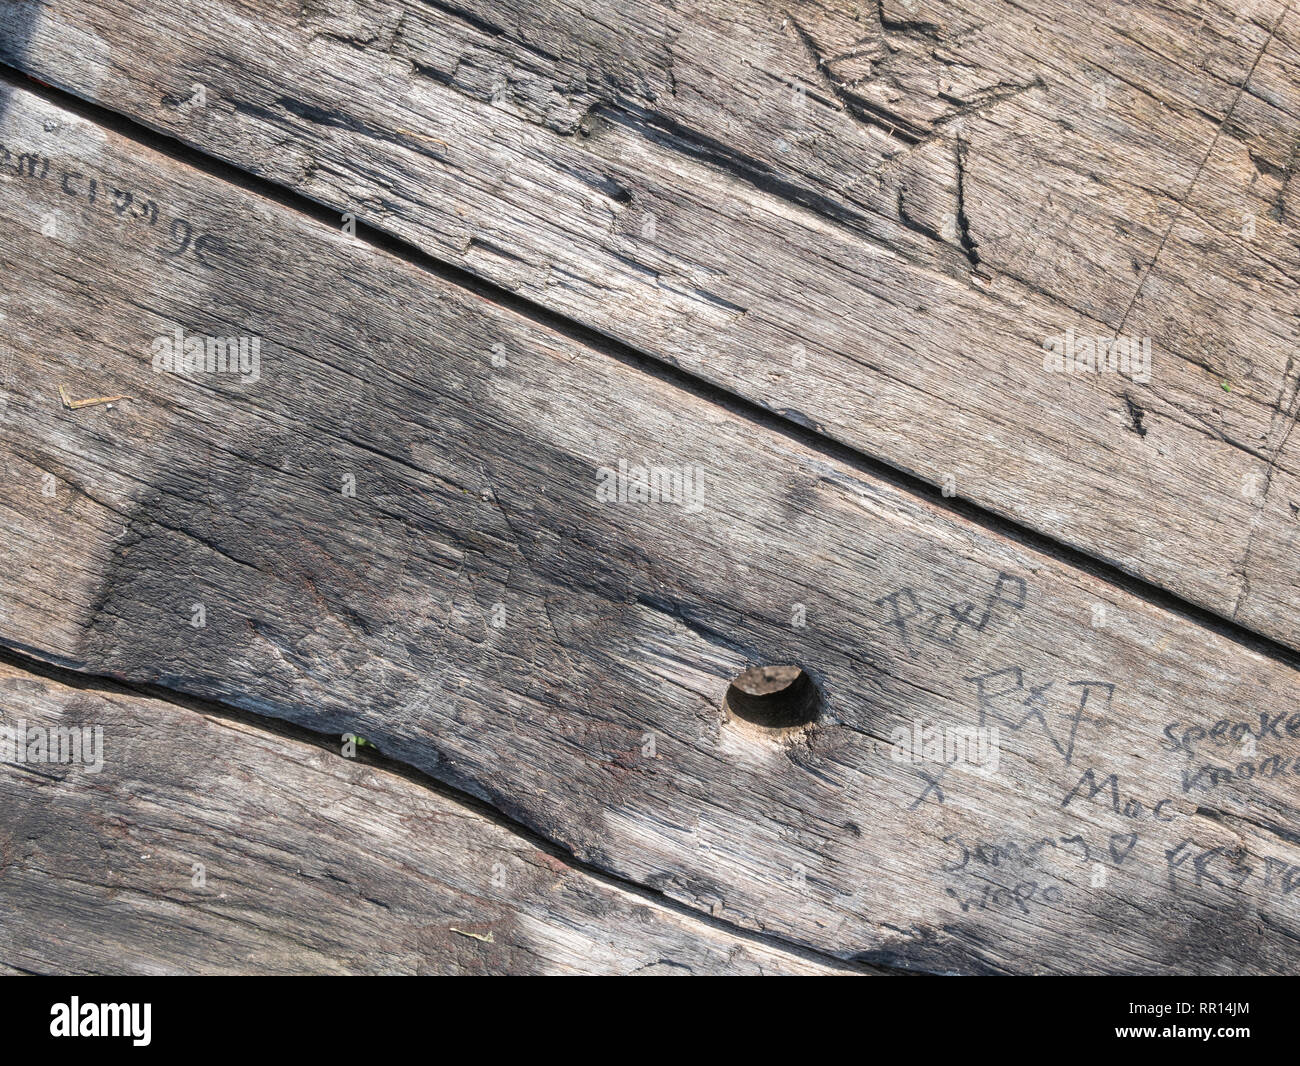 Weathered and gnarled wooden outdoor table top texture in sunshine. - Stock Image